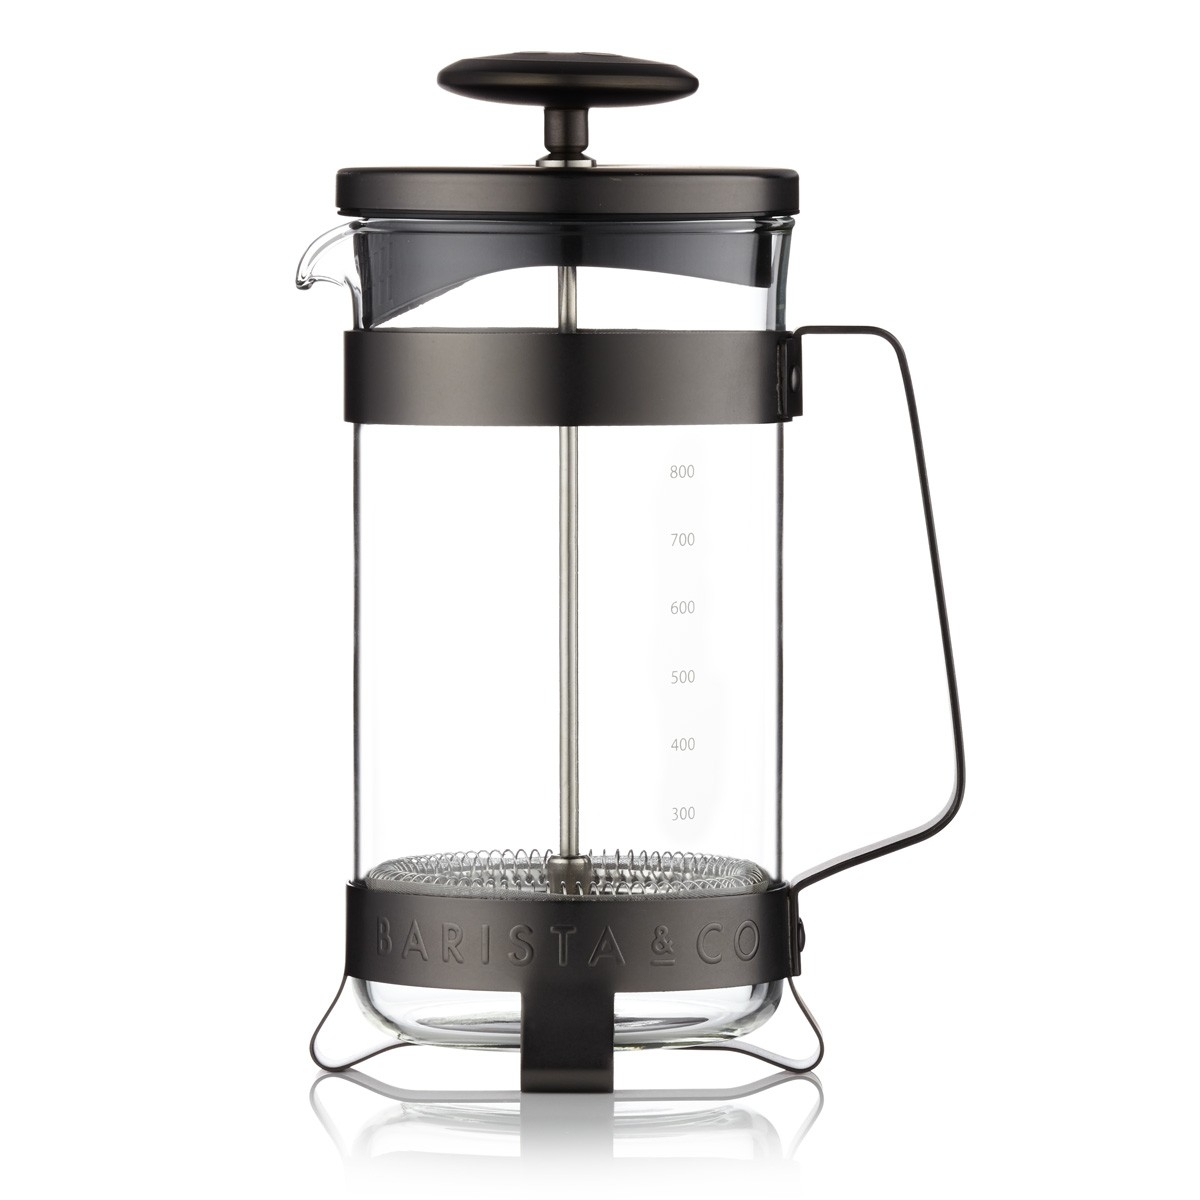 Barista & Co French press, 800 ml - Gunmetal